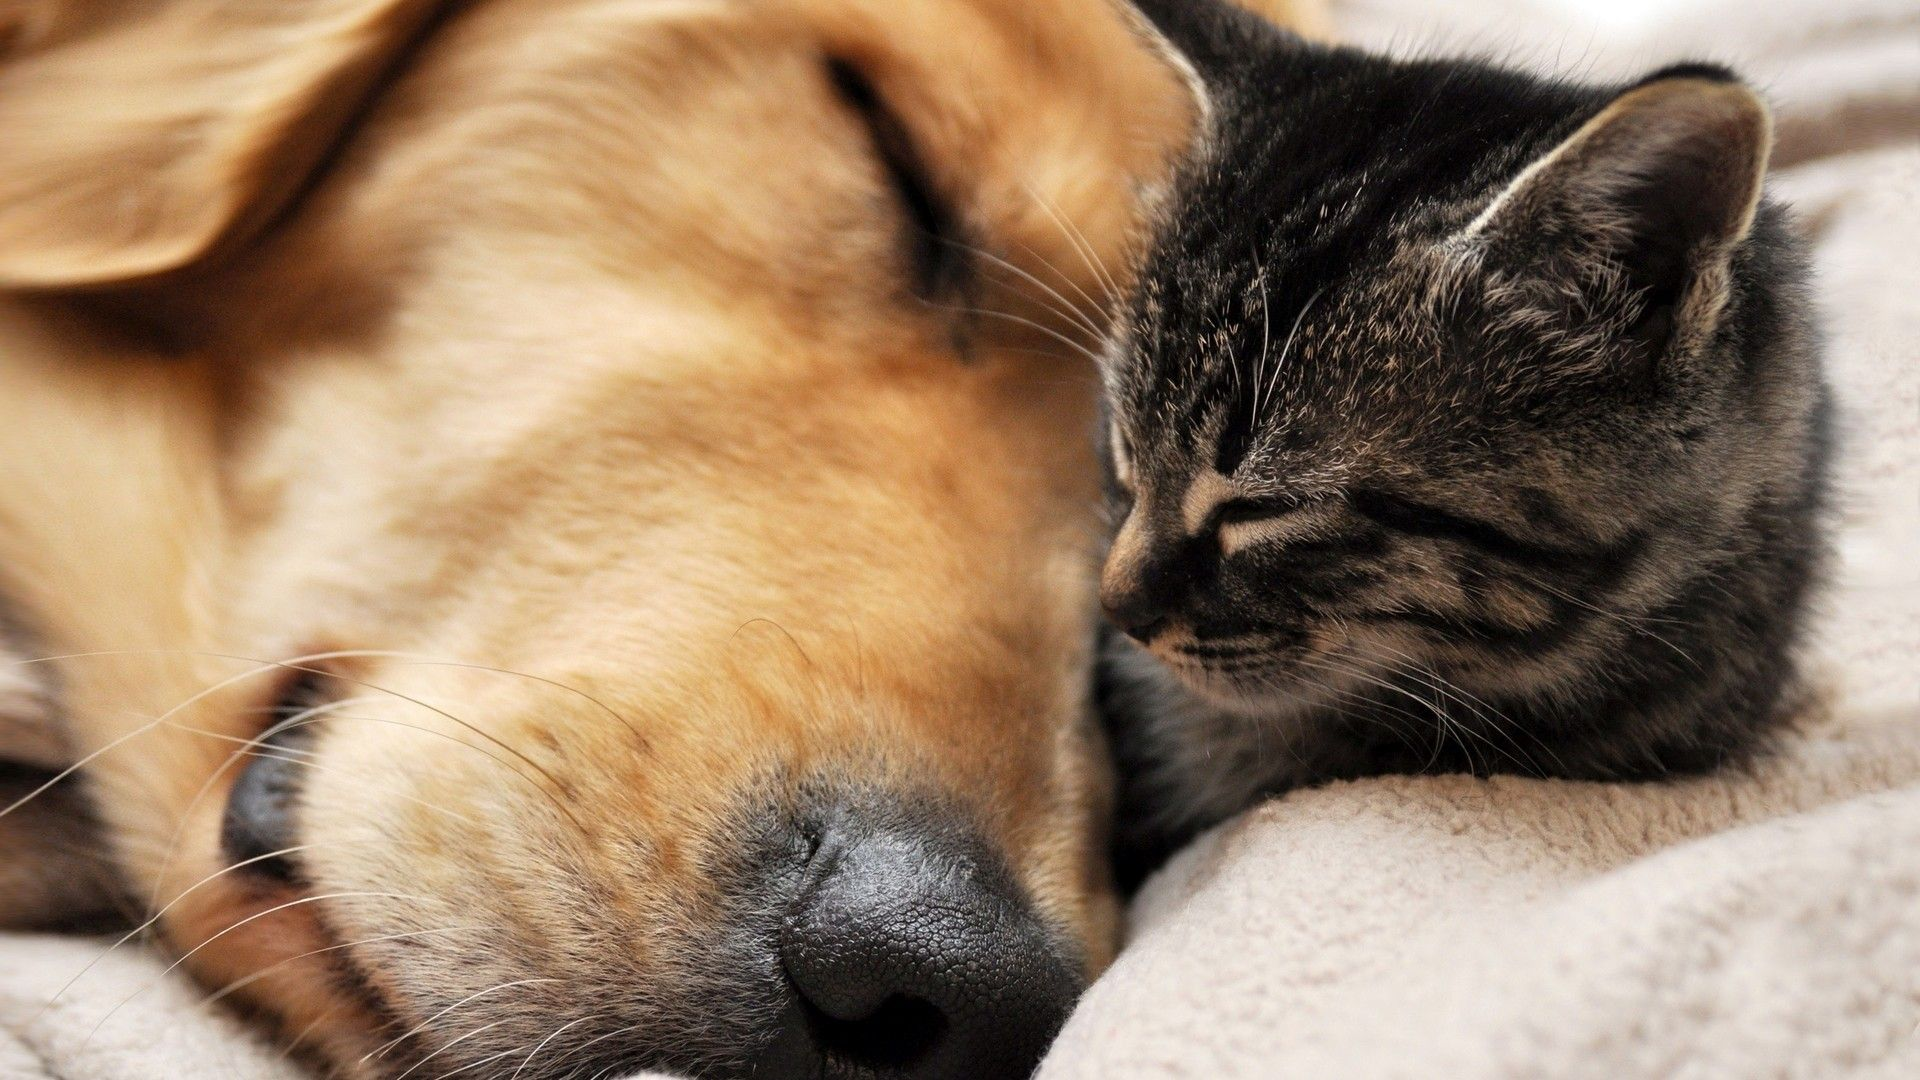 Free Download Cat And Dog Wallpaper 1920 1080 Https Www Wallpapermania Website P 14819 Sleeping Dogs Cute Cats And Dogs Dog And Cat Images